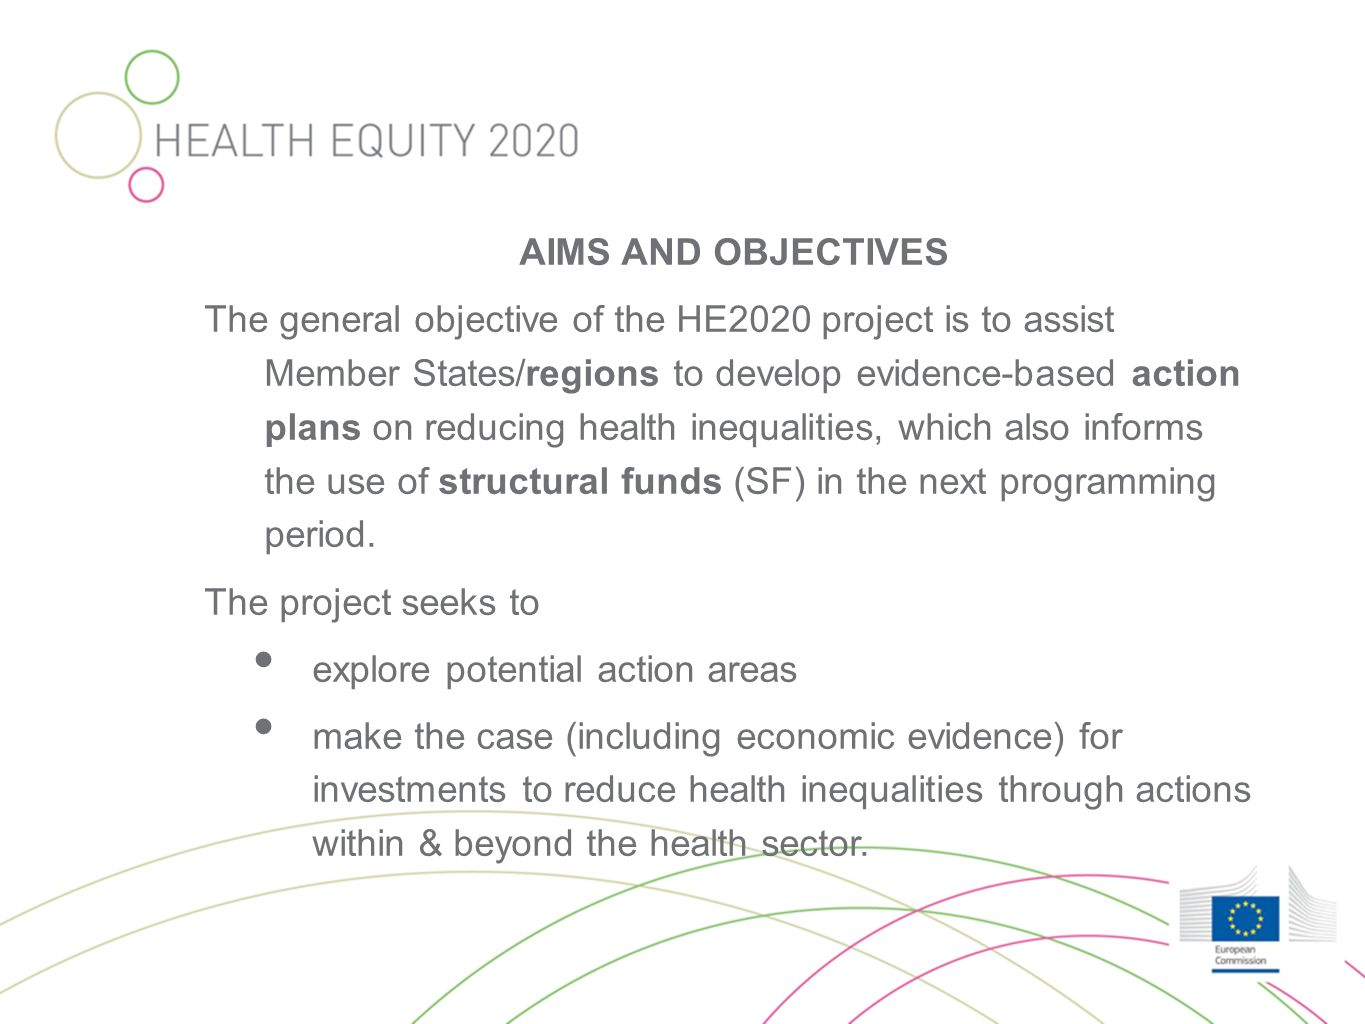 AIMS AND OBJECTIVES The general objective of the HE2020 project is to assist Member States/regions to develop evidence-based action plans on reducing health inequalities, which also informs the use of structural funds (SF) in the next programming period.